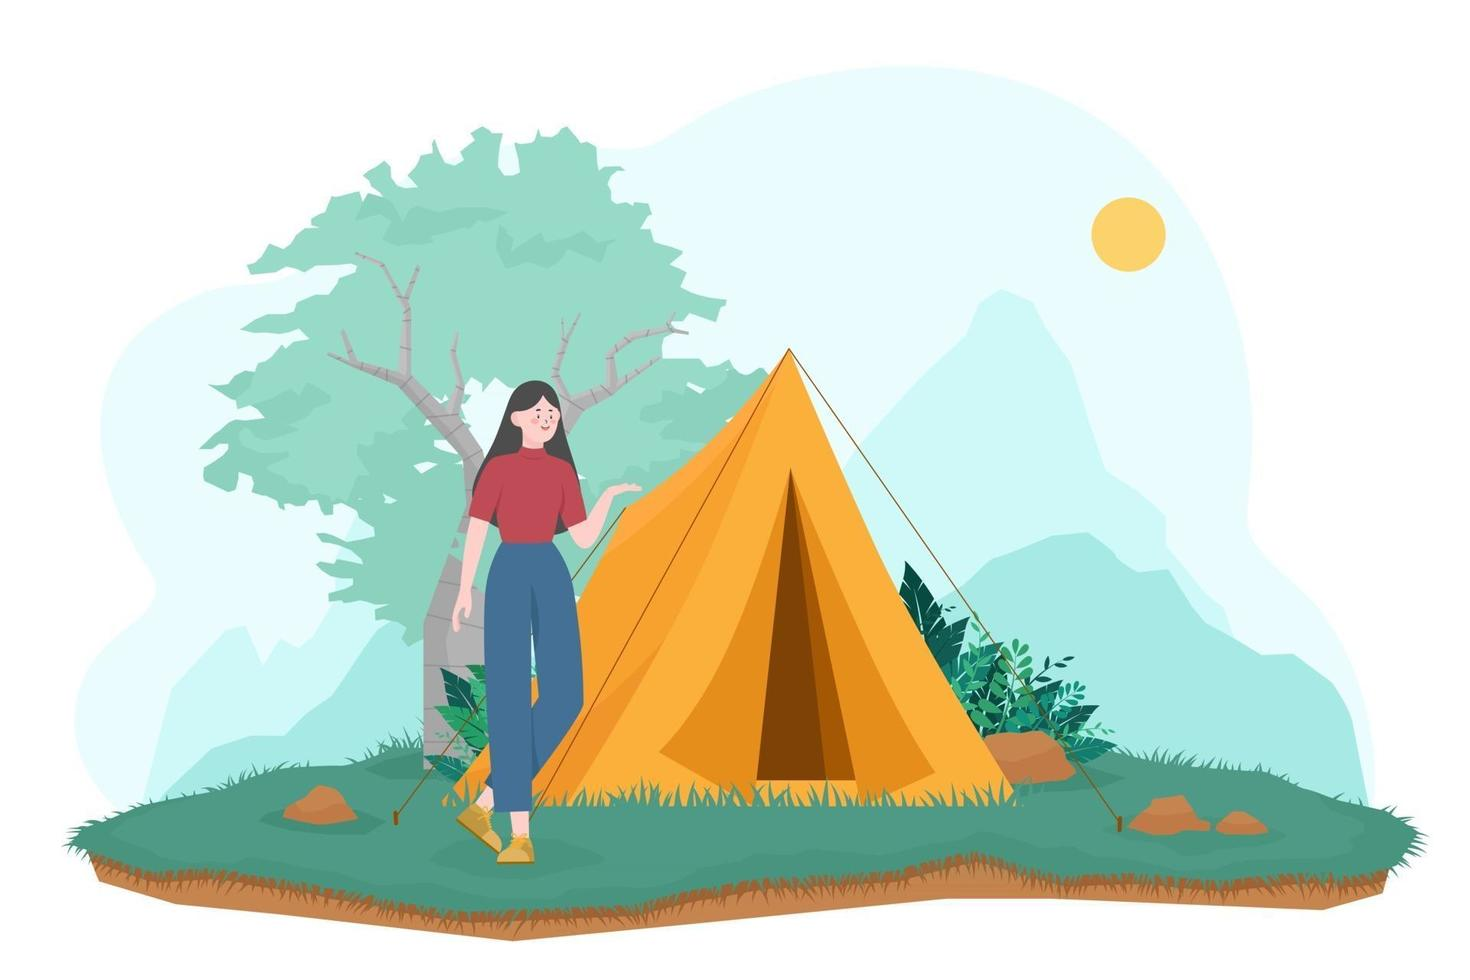 Tourist Summer camping vector illustration with Camping tents Outdoor nature adventure